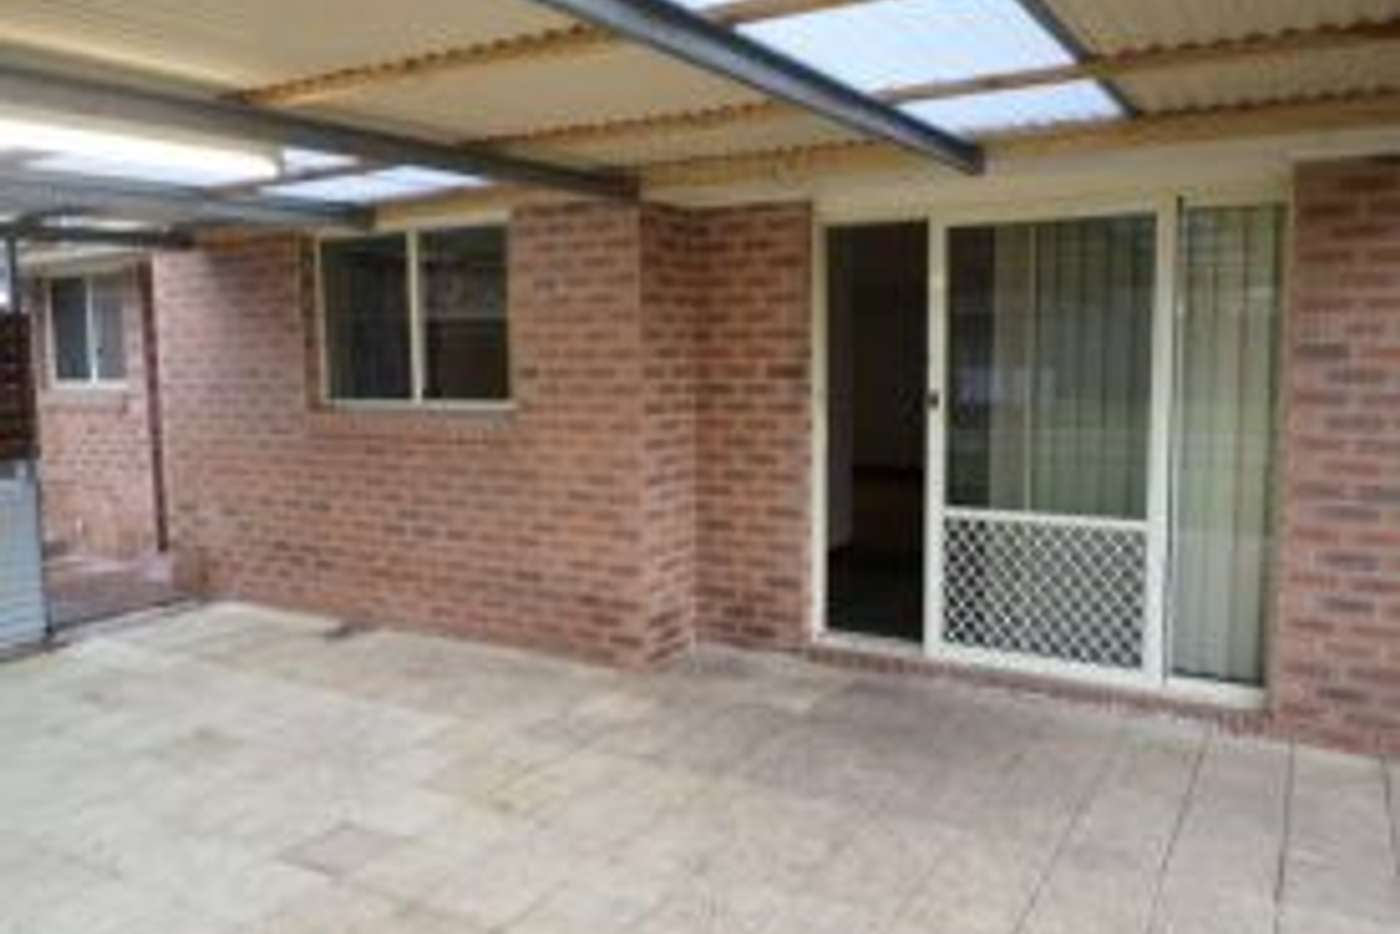 Seventh view of Homely house listing, 251 Thirlmere Way, Thirlmere NSW 2572